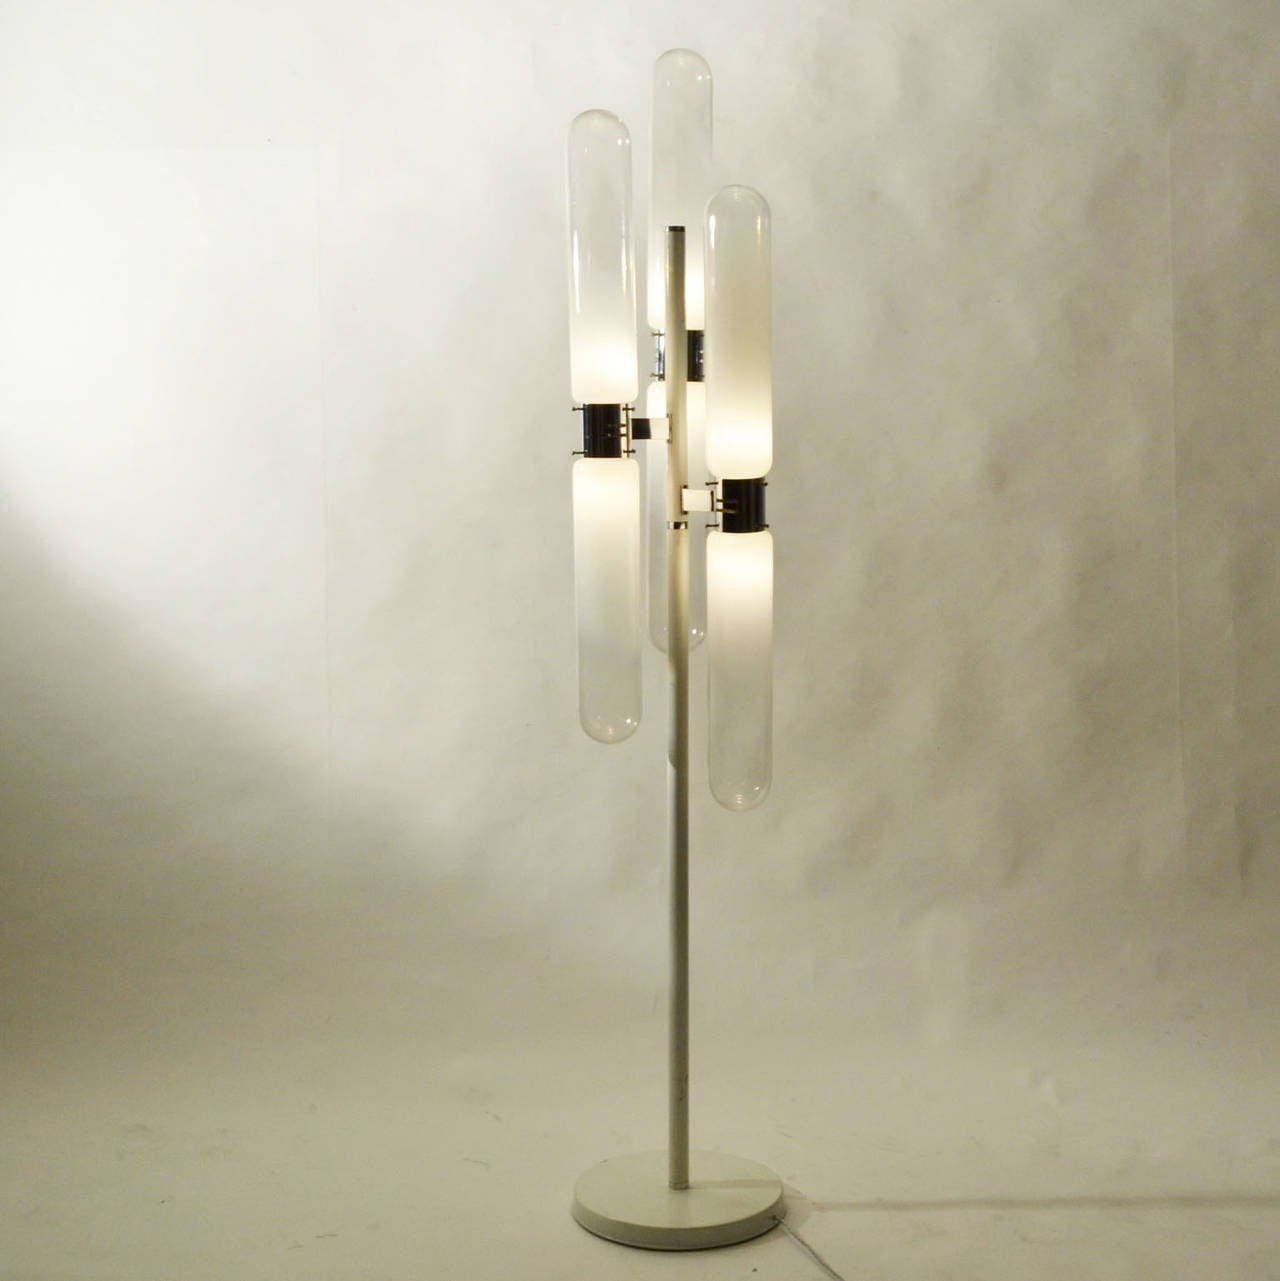 Mid-20th Century Sculptural Floor Lamp with Murano Glass by Carlo Nason for Mazzega For Sale